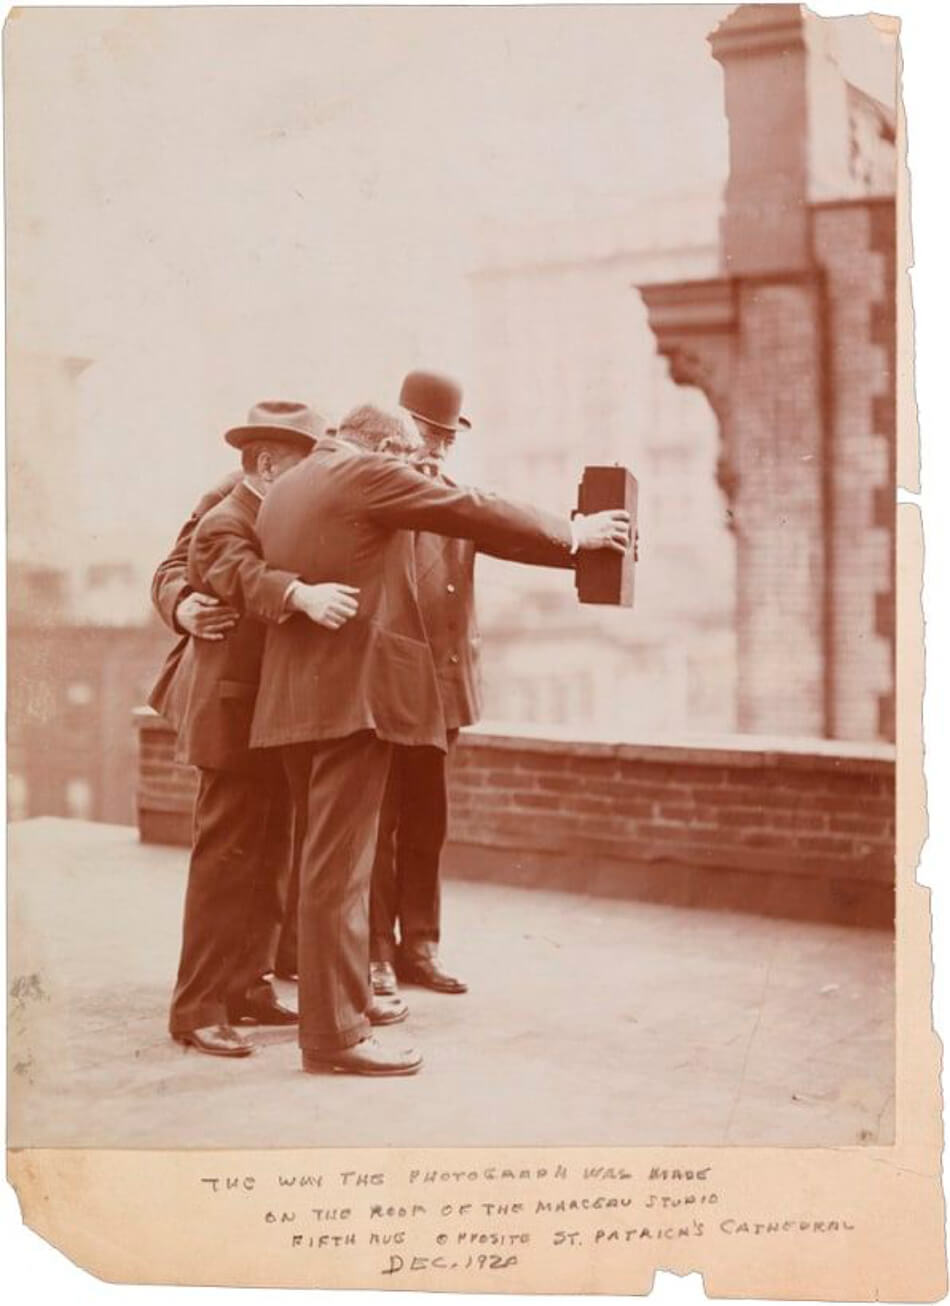 Making of del primer selfie de la historia